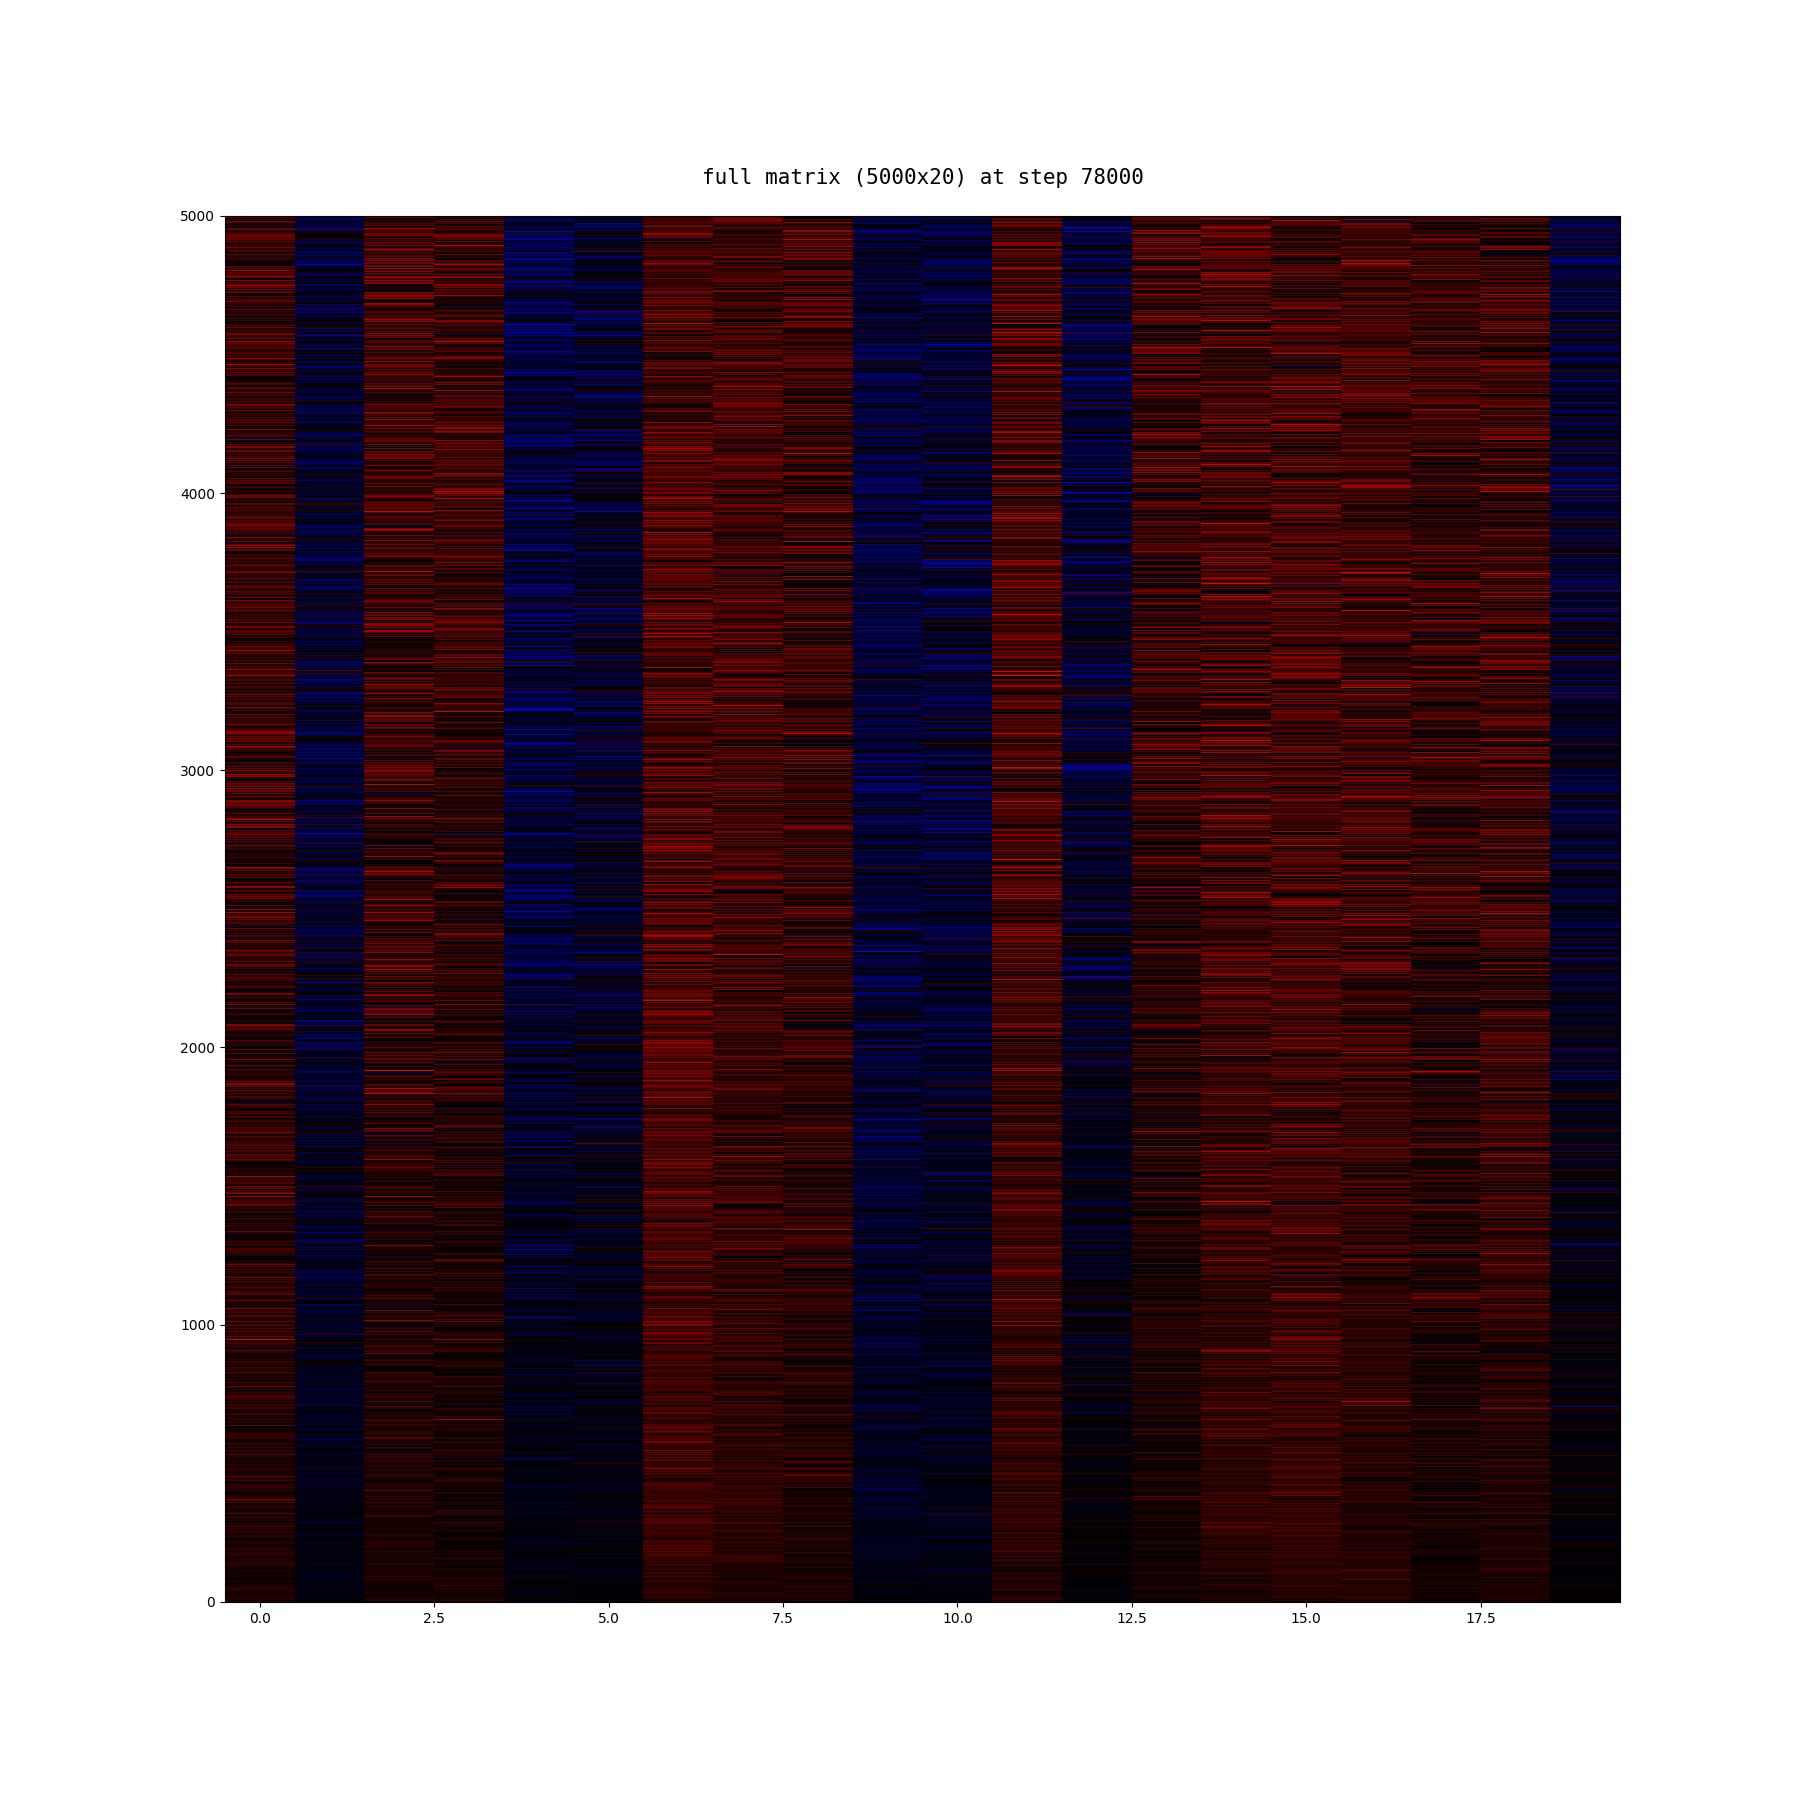 algoliterary_encounter/word2vec/plots/full-matrix/frankenstein-full-matrix-at-step_78000.png